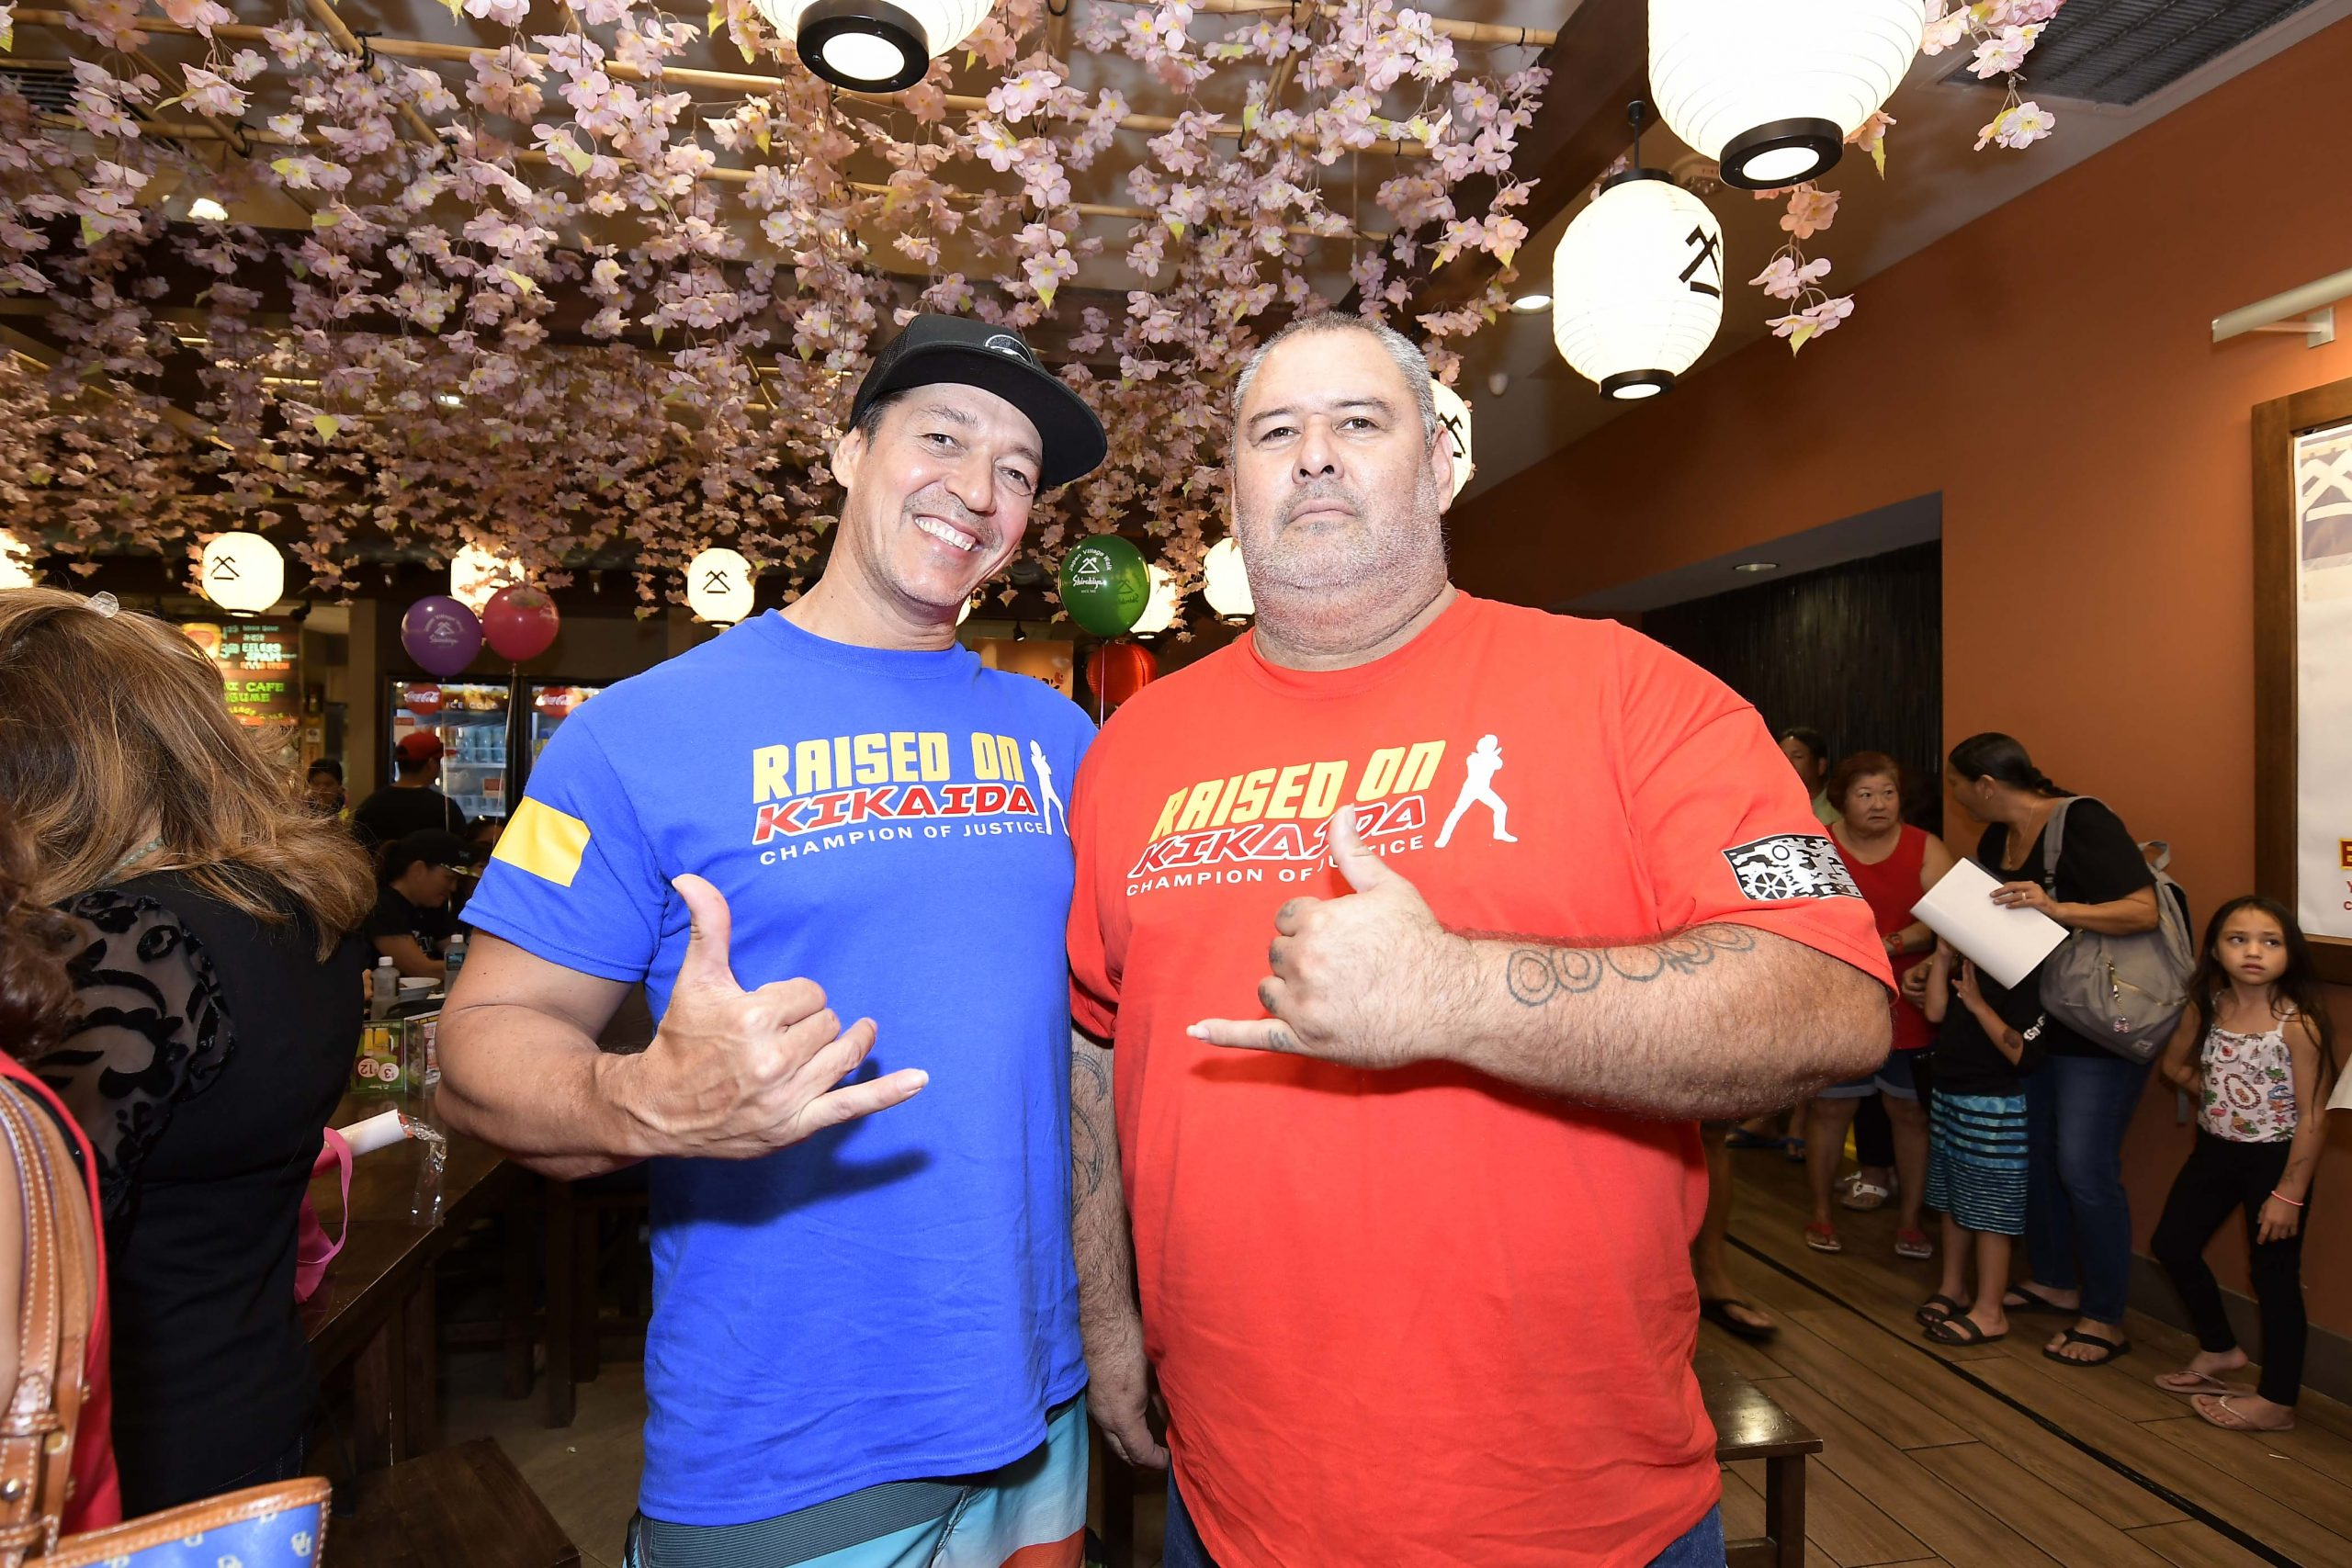 """Among the early fans of Kikaida were brothers Frank (left) and Mike Bortmas, who attended the event proudly wearing their """"Raised on Kikaida . . . Champion of Justice"""" T-shirts."""